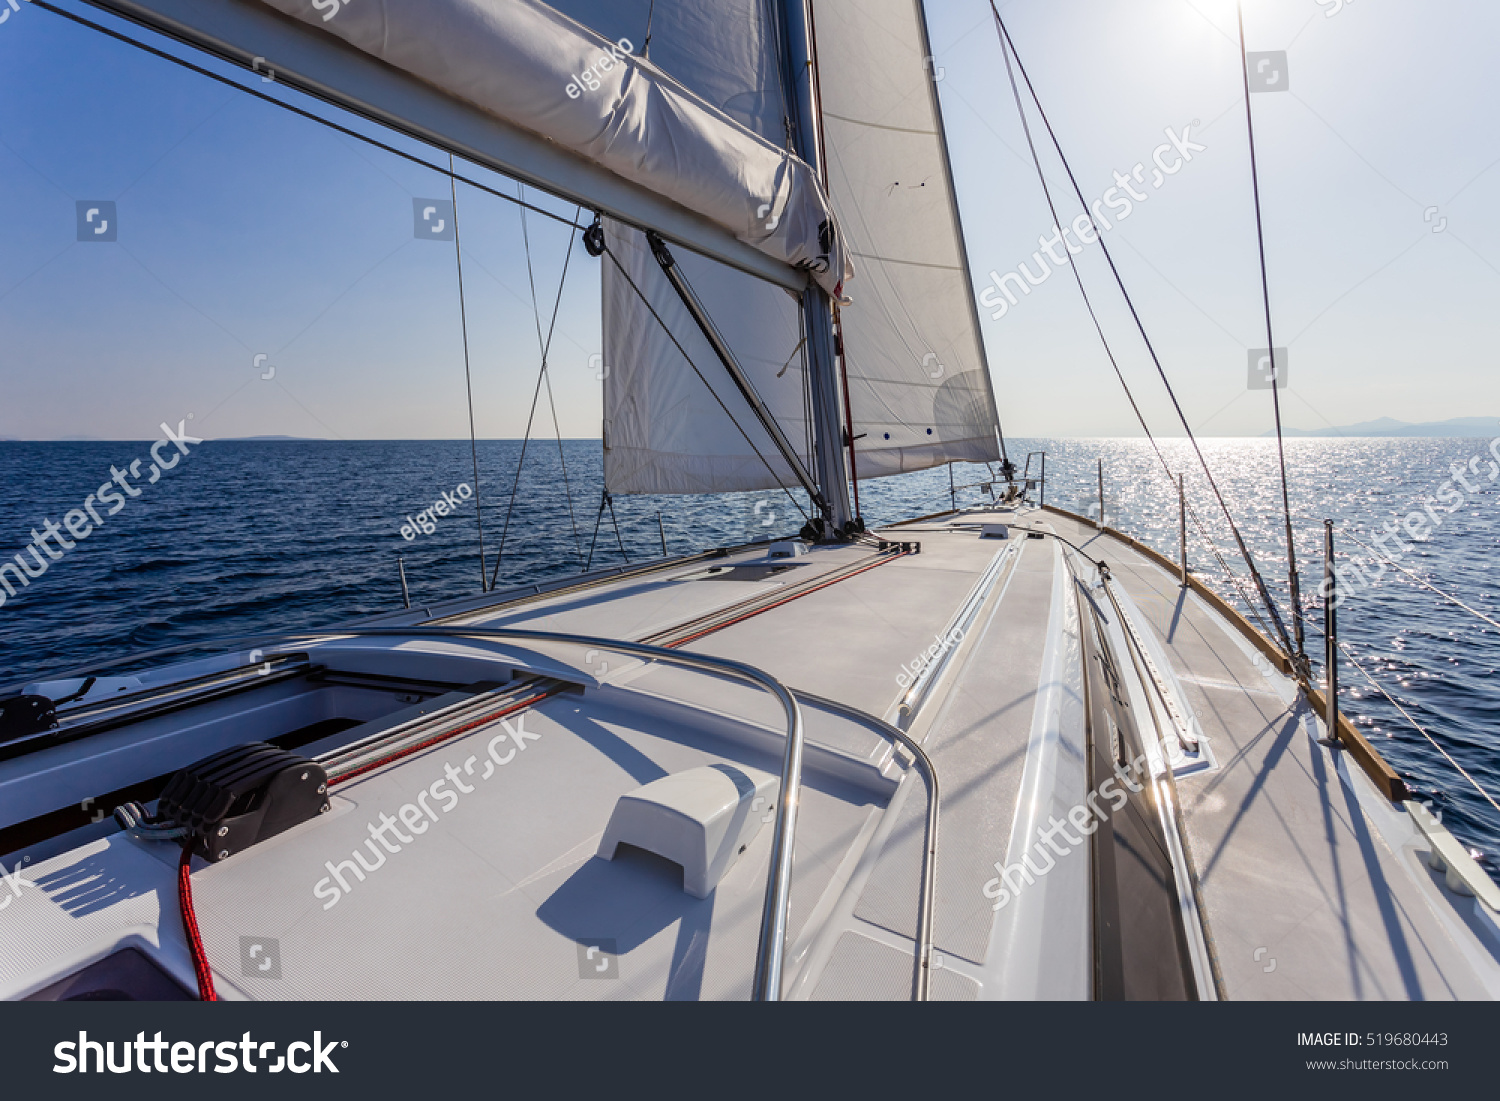 stock-photo-sail-vessel-surfing-on-the-sea-519680443